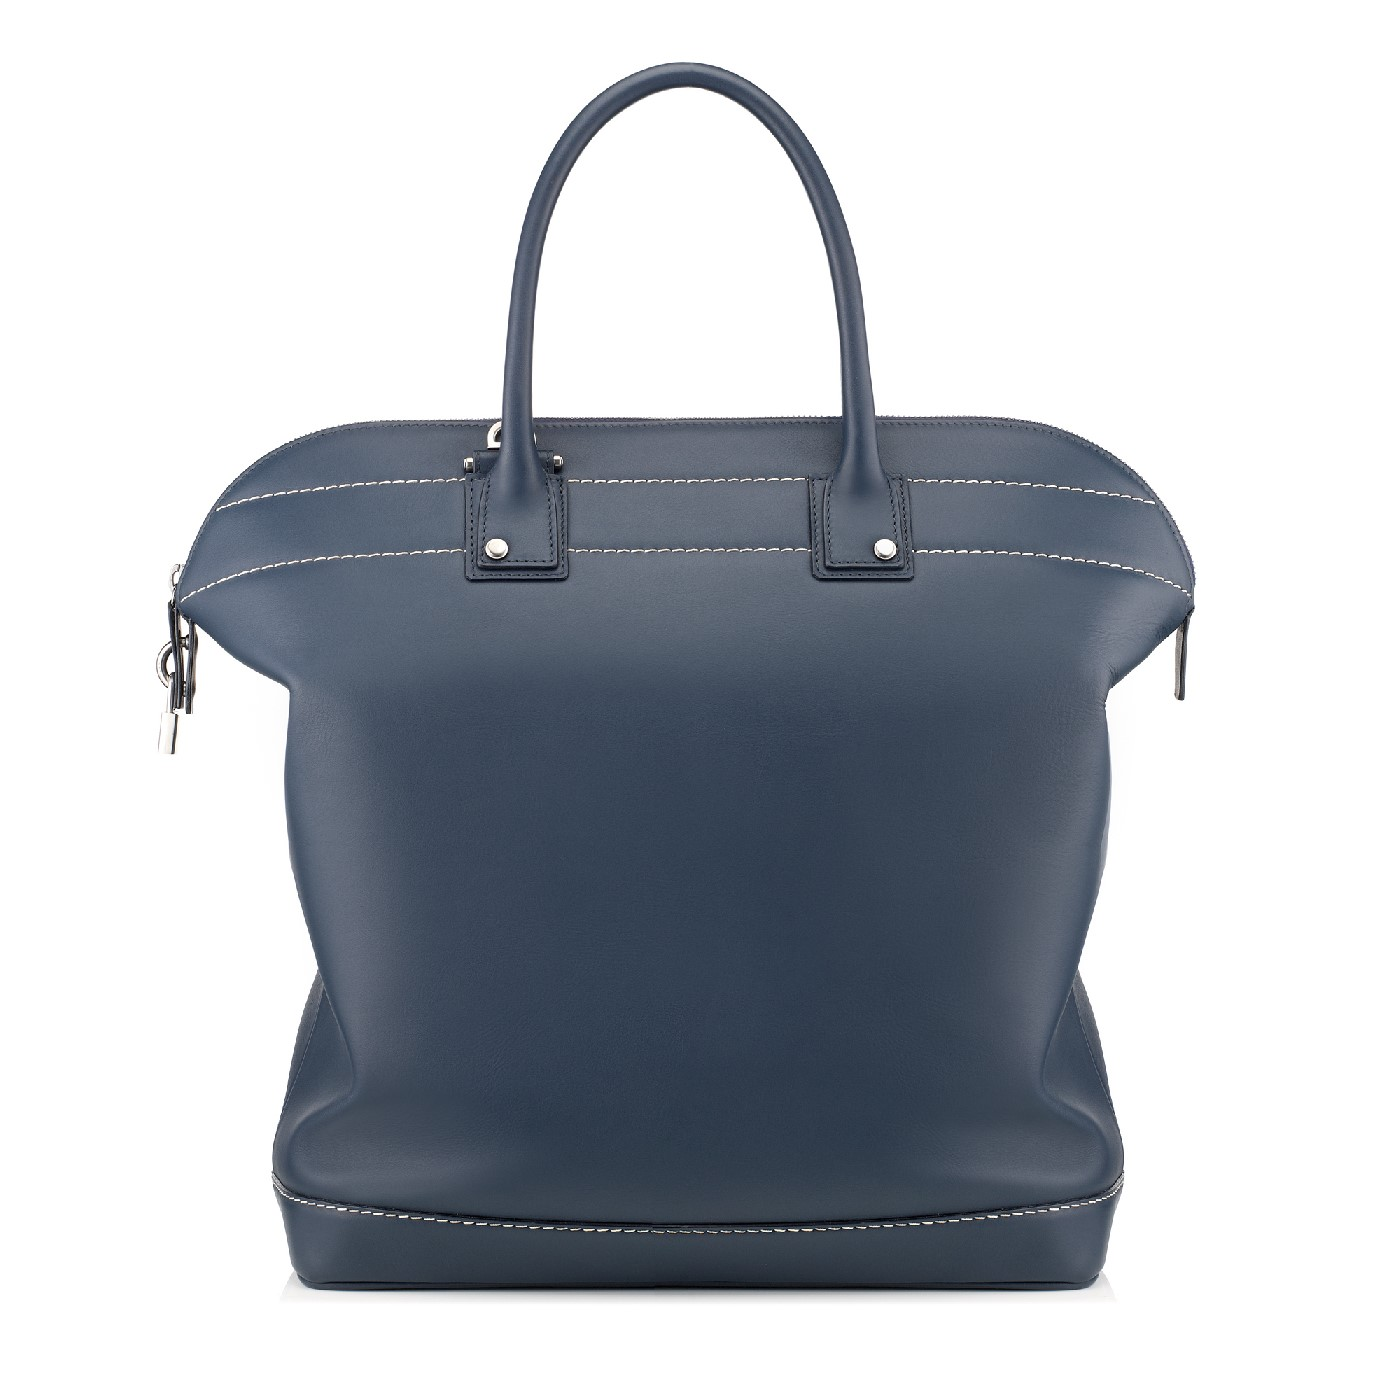 The iconic Gladstone London Tote's design was inspired by a 1920s linen bag